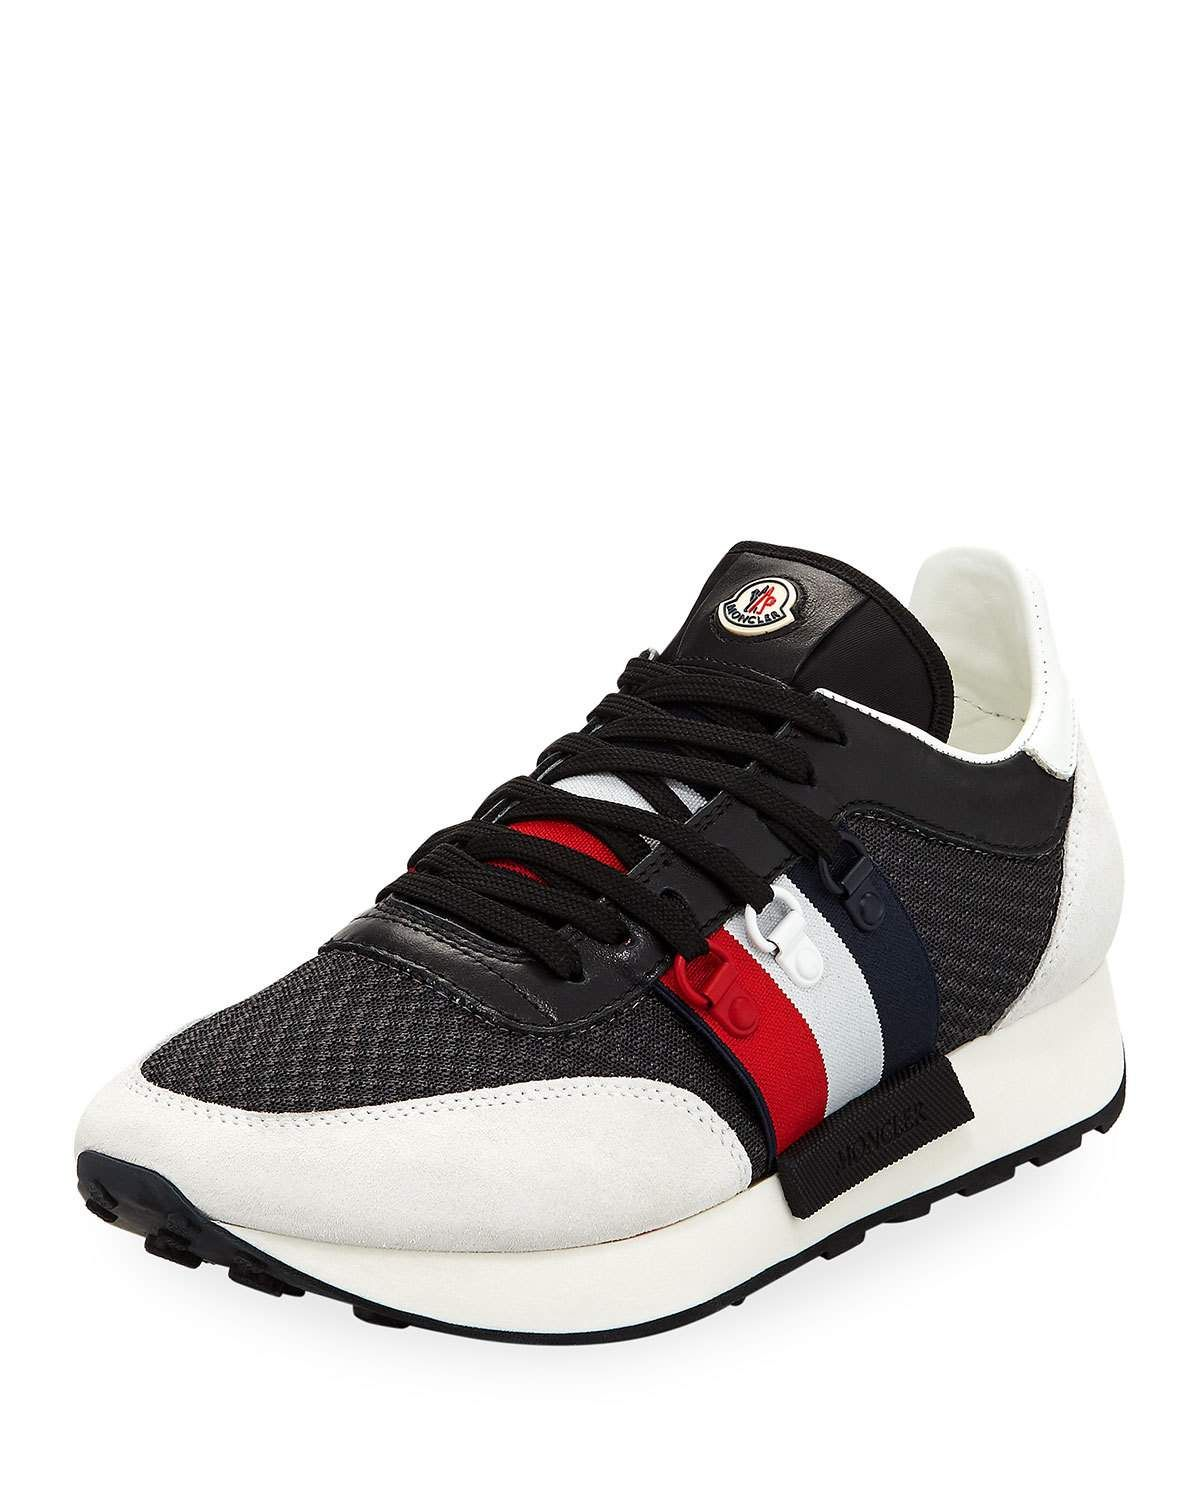 381a39c72 MONCLER NEW HORACE LEATHER   NYLON TRAINER SNEAKER.  moncler  shoes ...